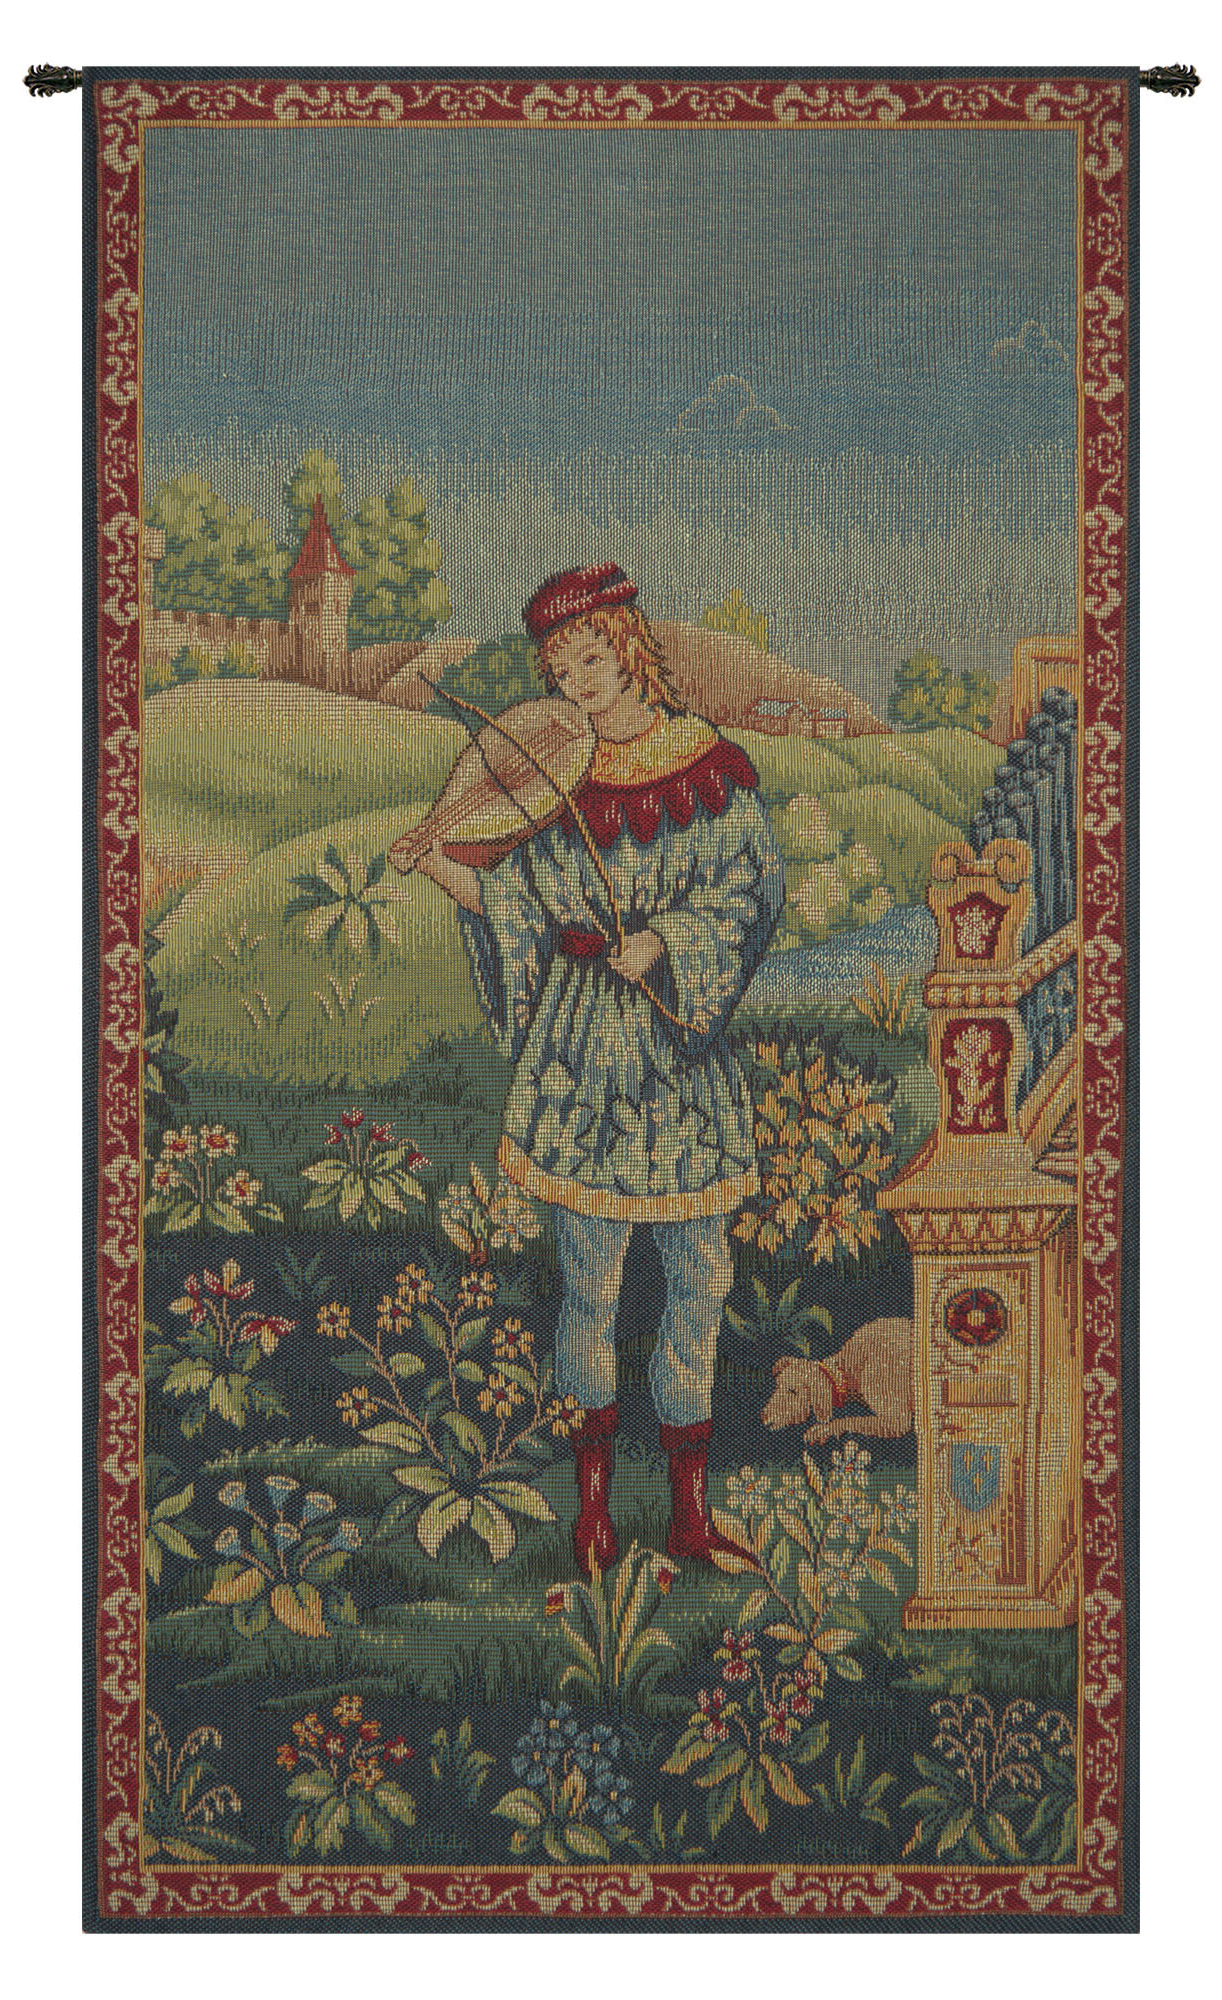 Newest Blended Fabric Le Troubadour Tapestry Regarding Blended Fabric In His Tapestries And Wall Hangings (View 6 of 20)